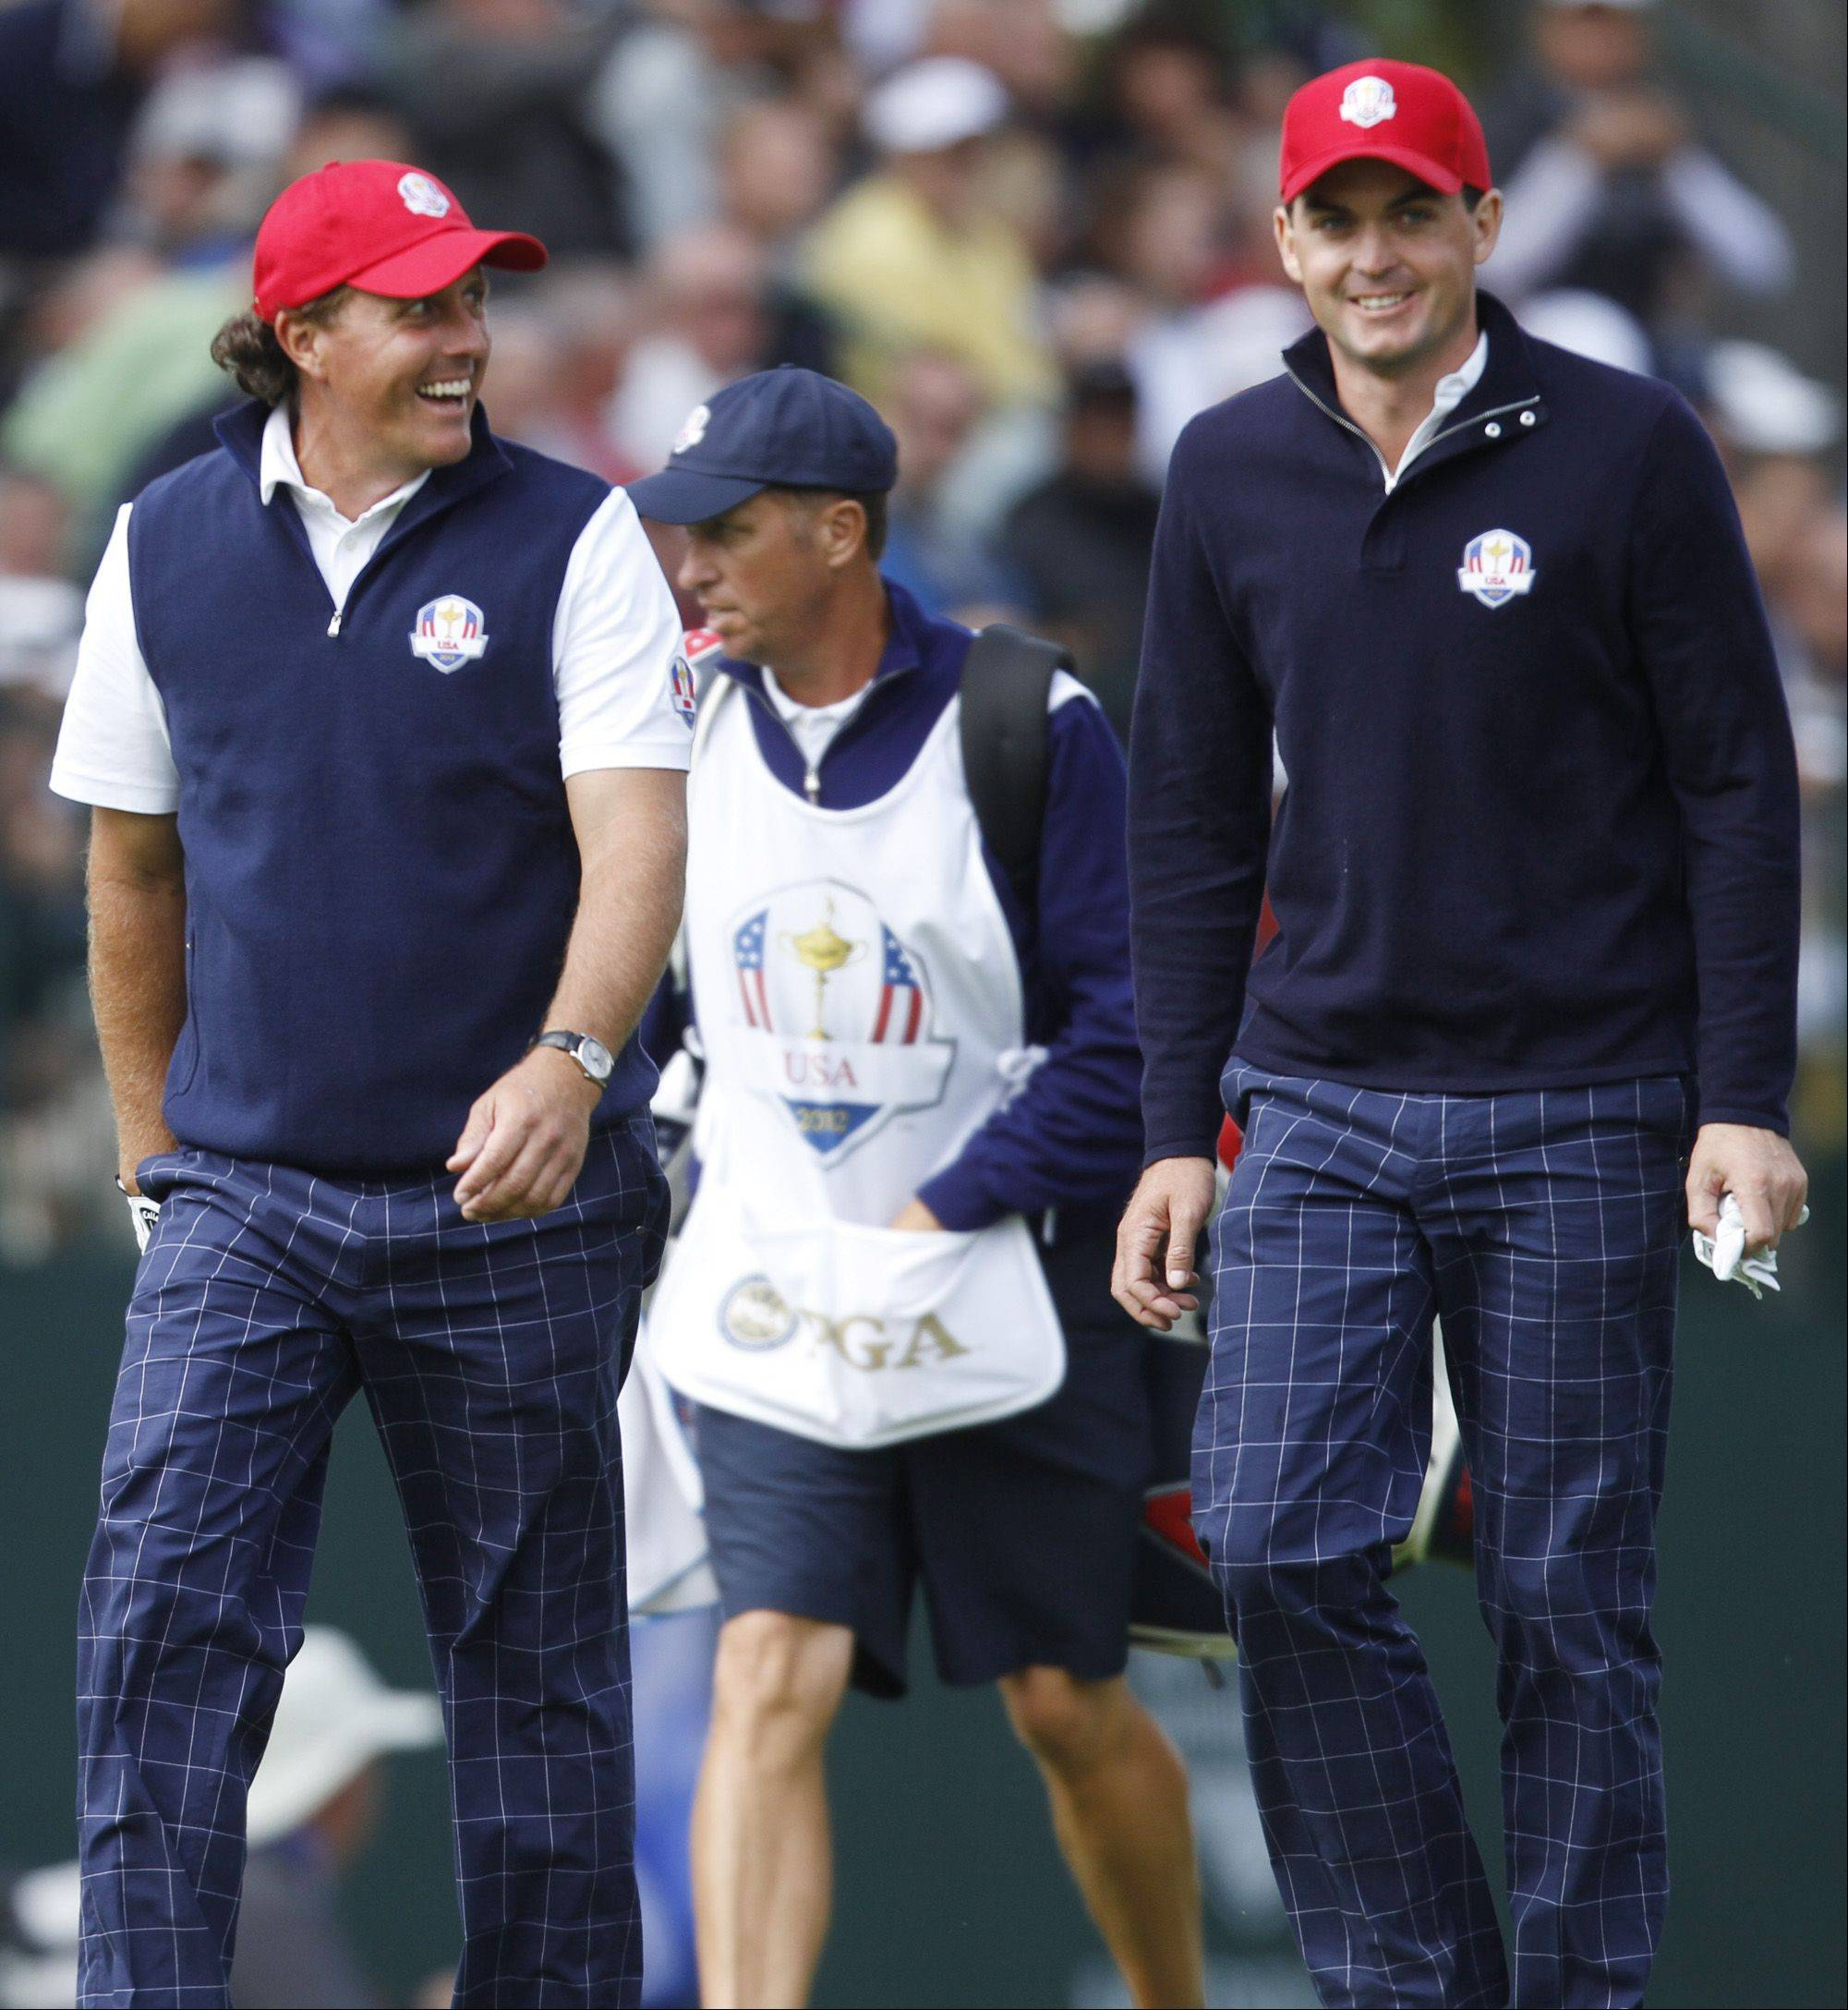 Teammate Phil Mickelson, left, says no one handles pressure better than Keegan Bradley. The two teamed up to win two matches and give the United States a lead after Friday's Ryder Cup matches at Medinah.